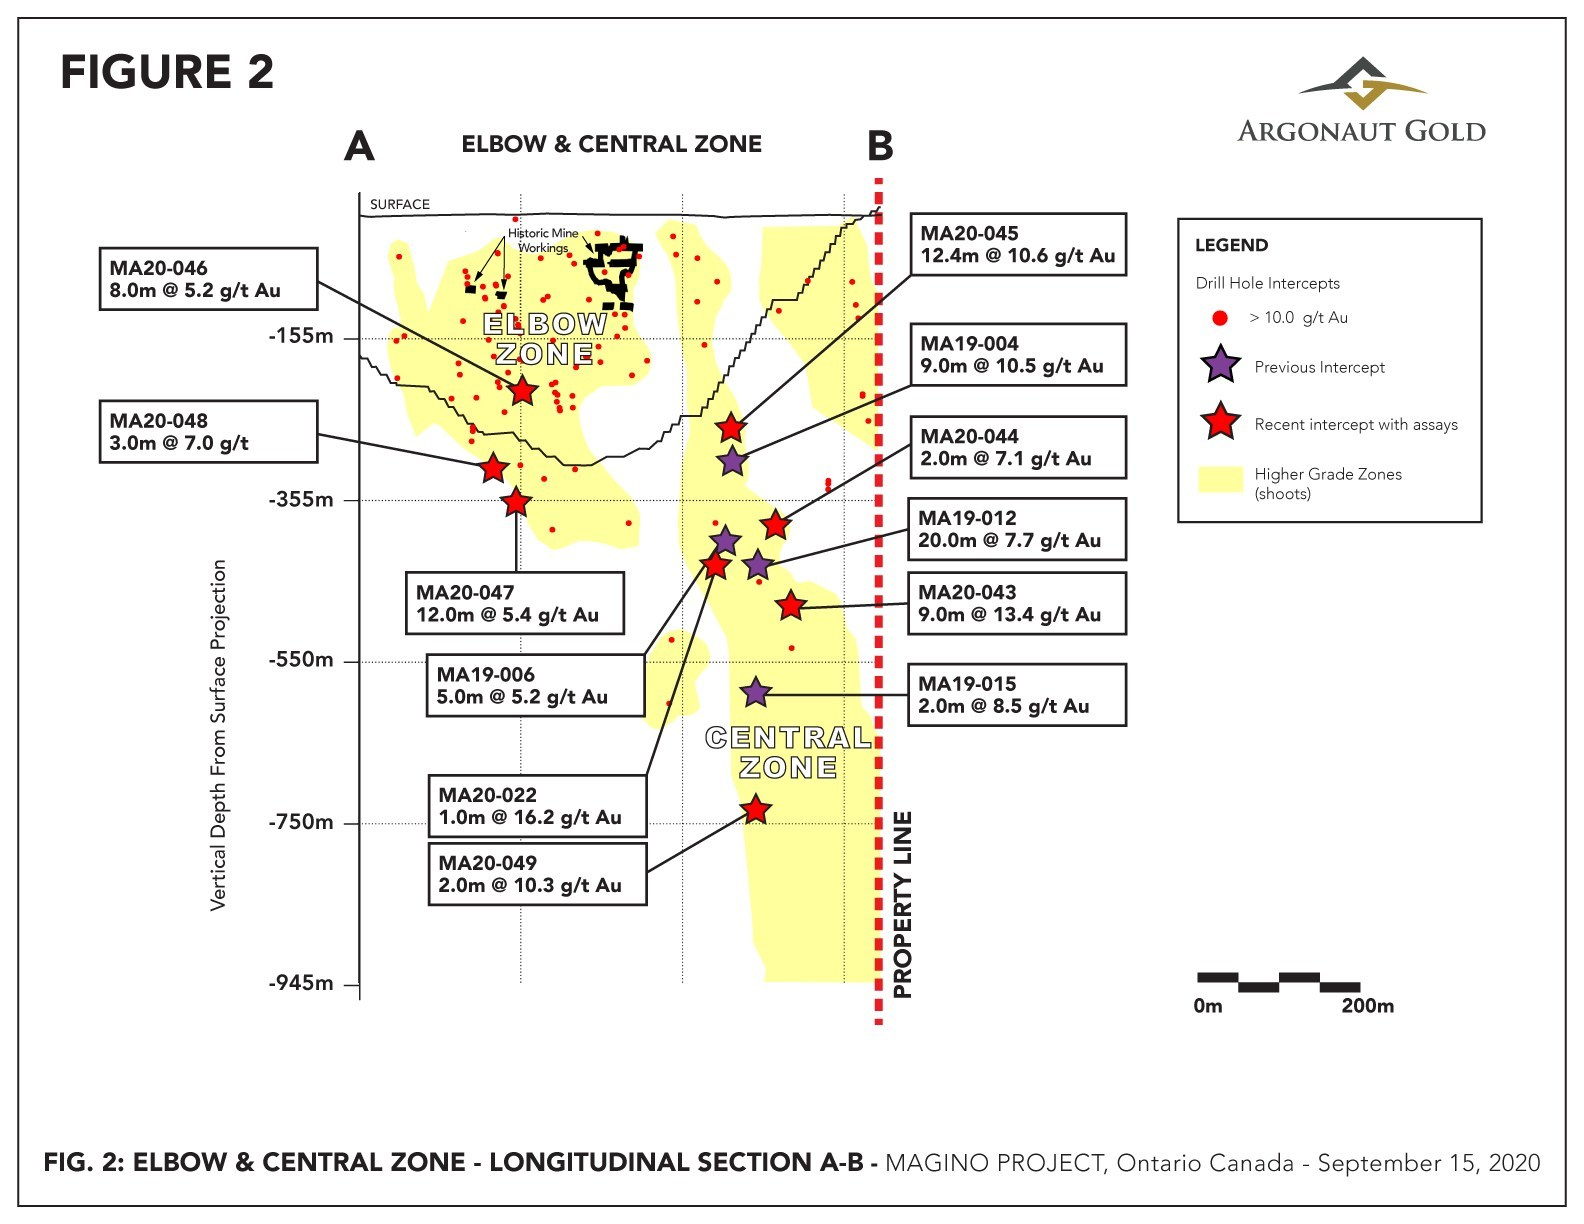 Figure 2 – Long Section of Elbow and Central Zones showing earlier drilling (dark stars) and recent drilling (red stars) discussed herein and other 10+ g/t Au drill hole intercepts (red dots). (CNW Group/Argonaut Gold Inc.)